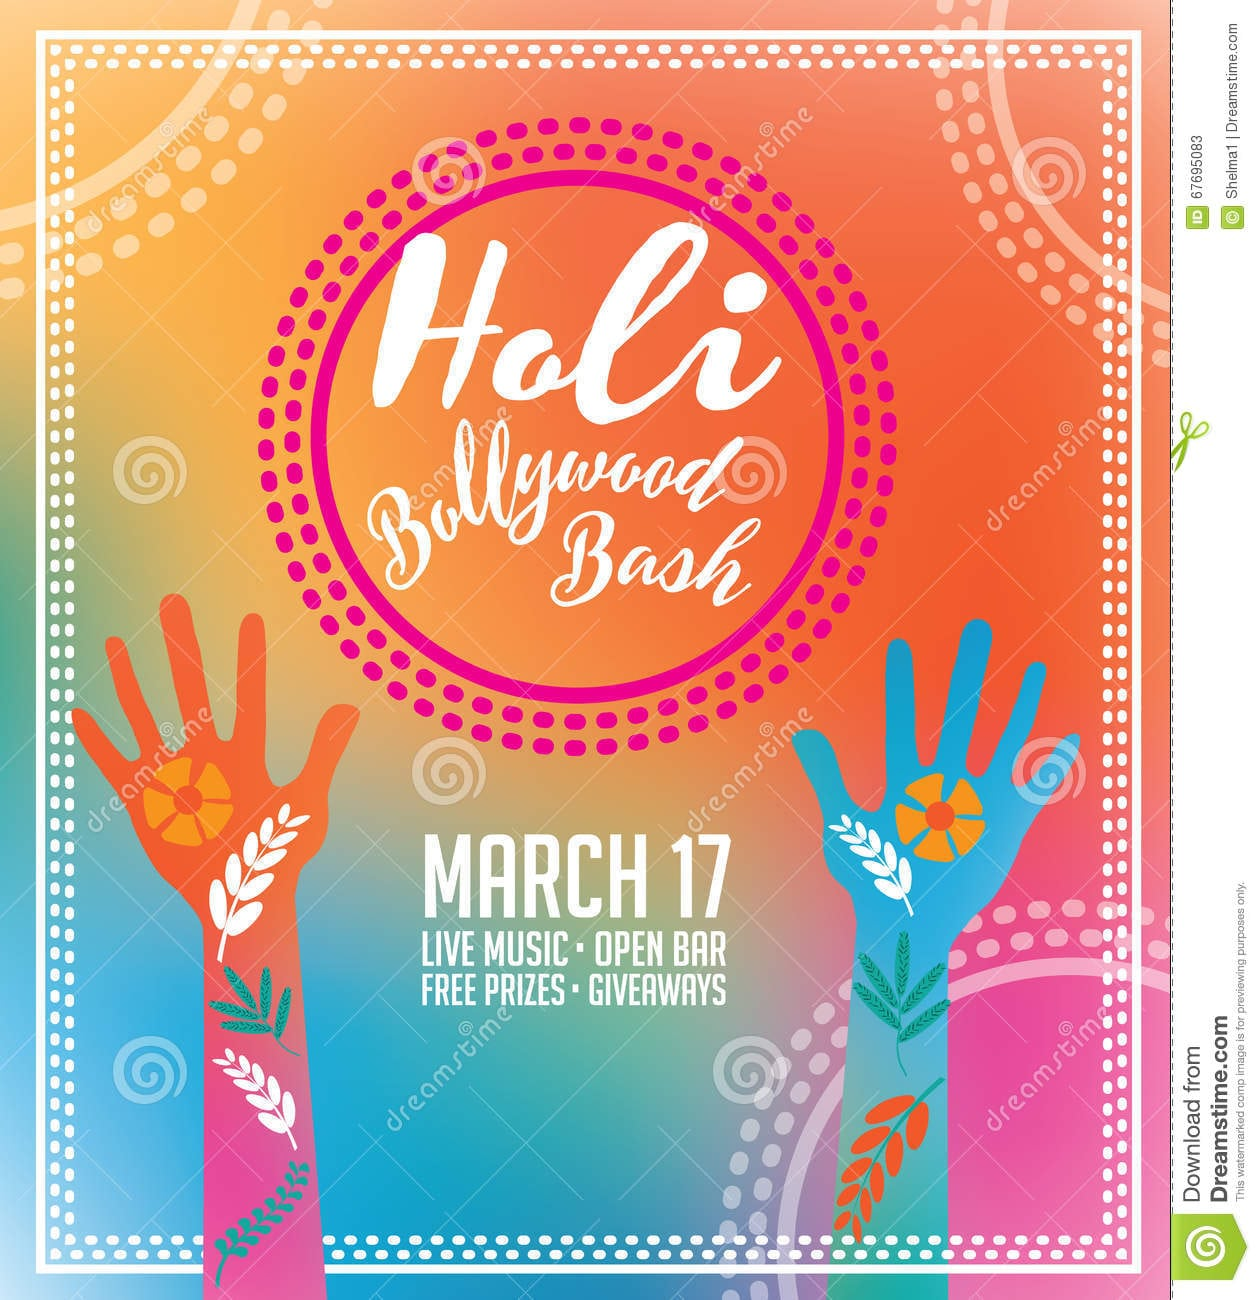 Holi Party Invitation Poster Greeting Card Design  Stock Vector